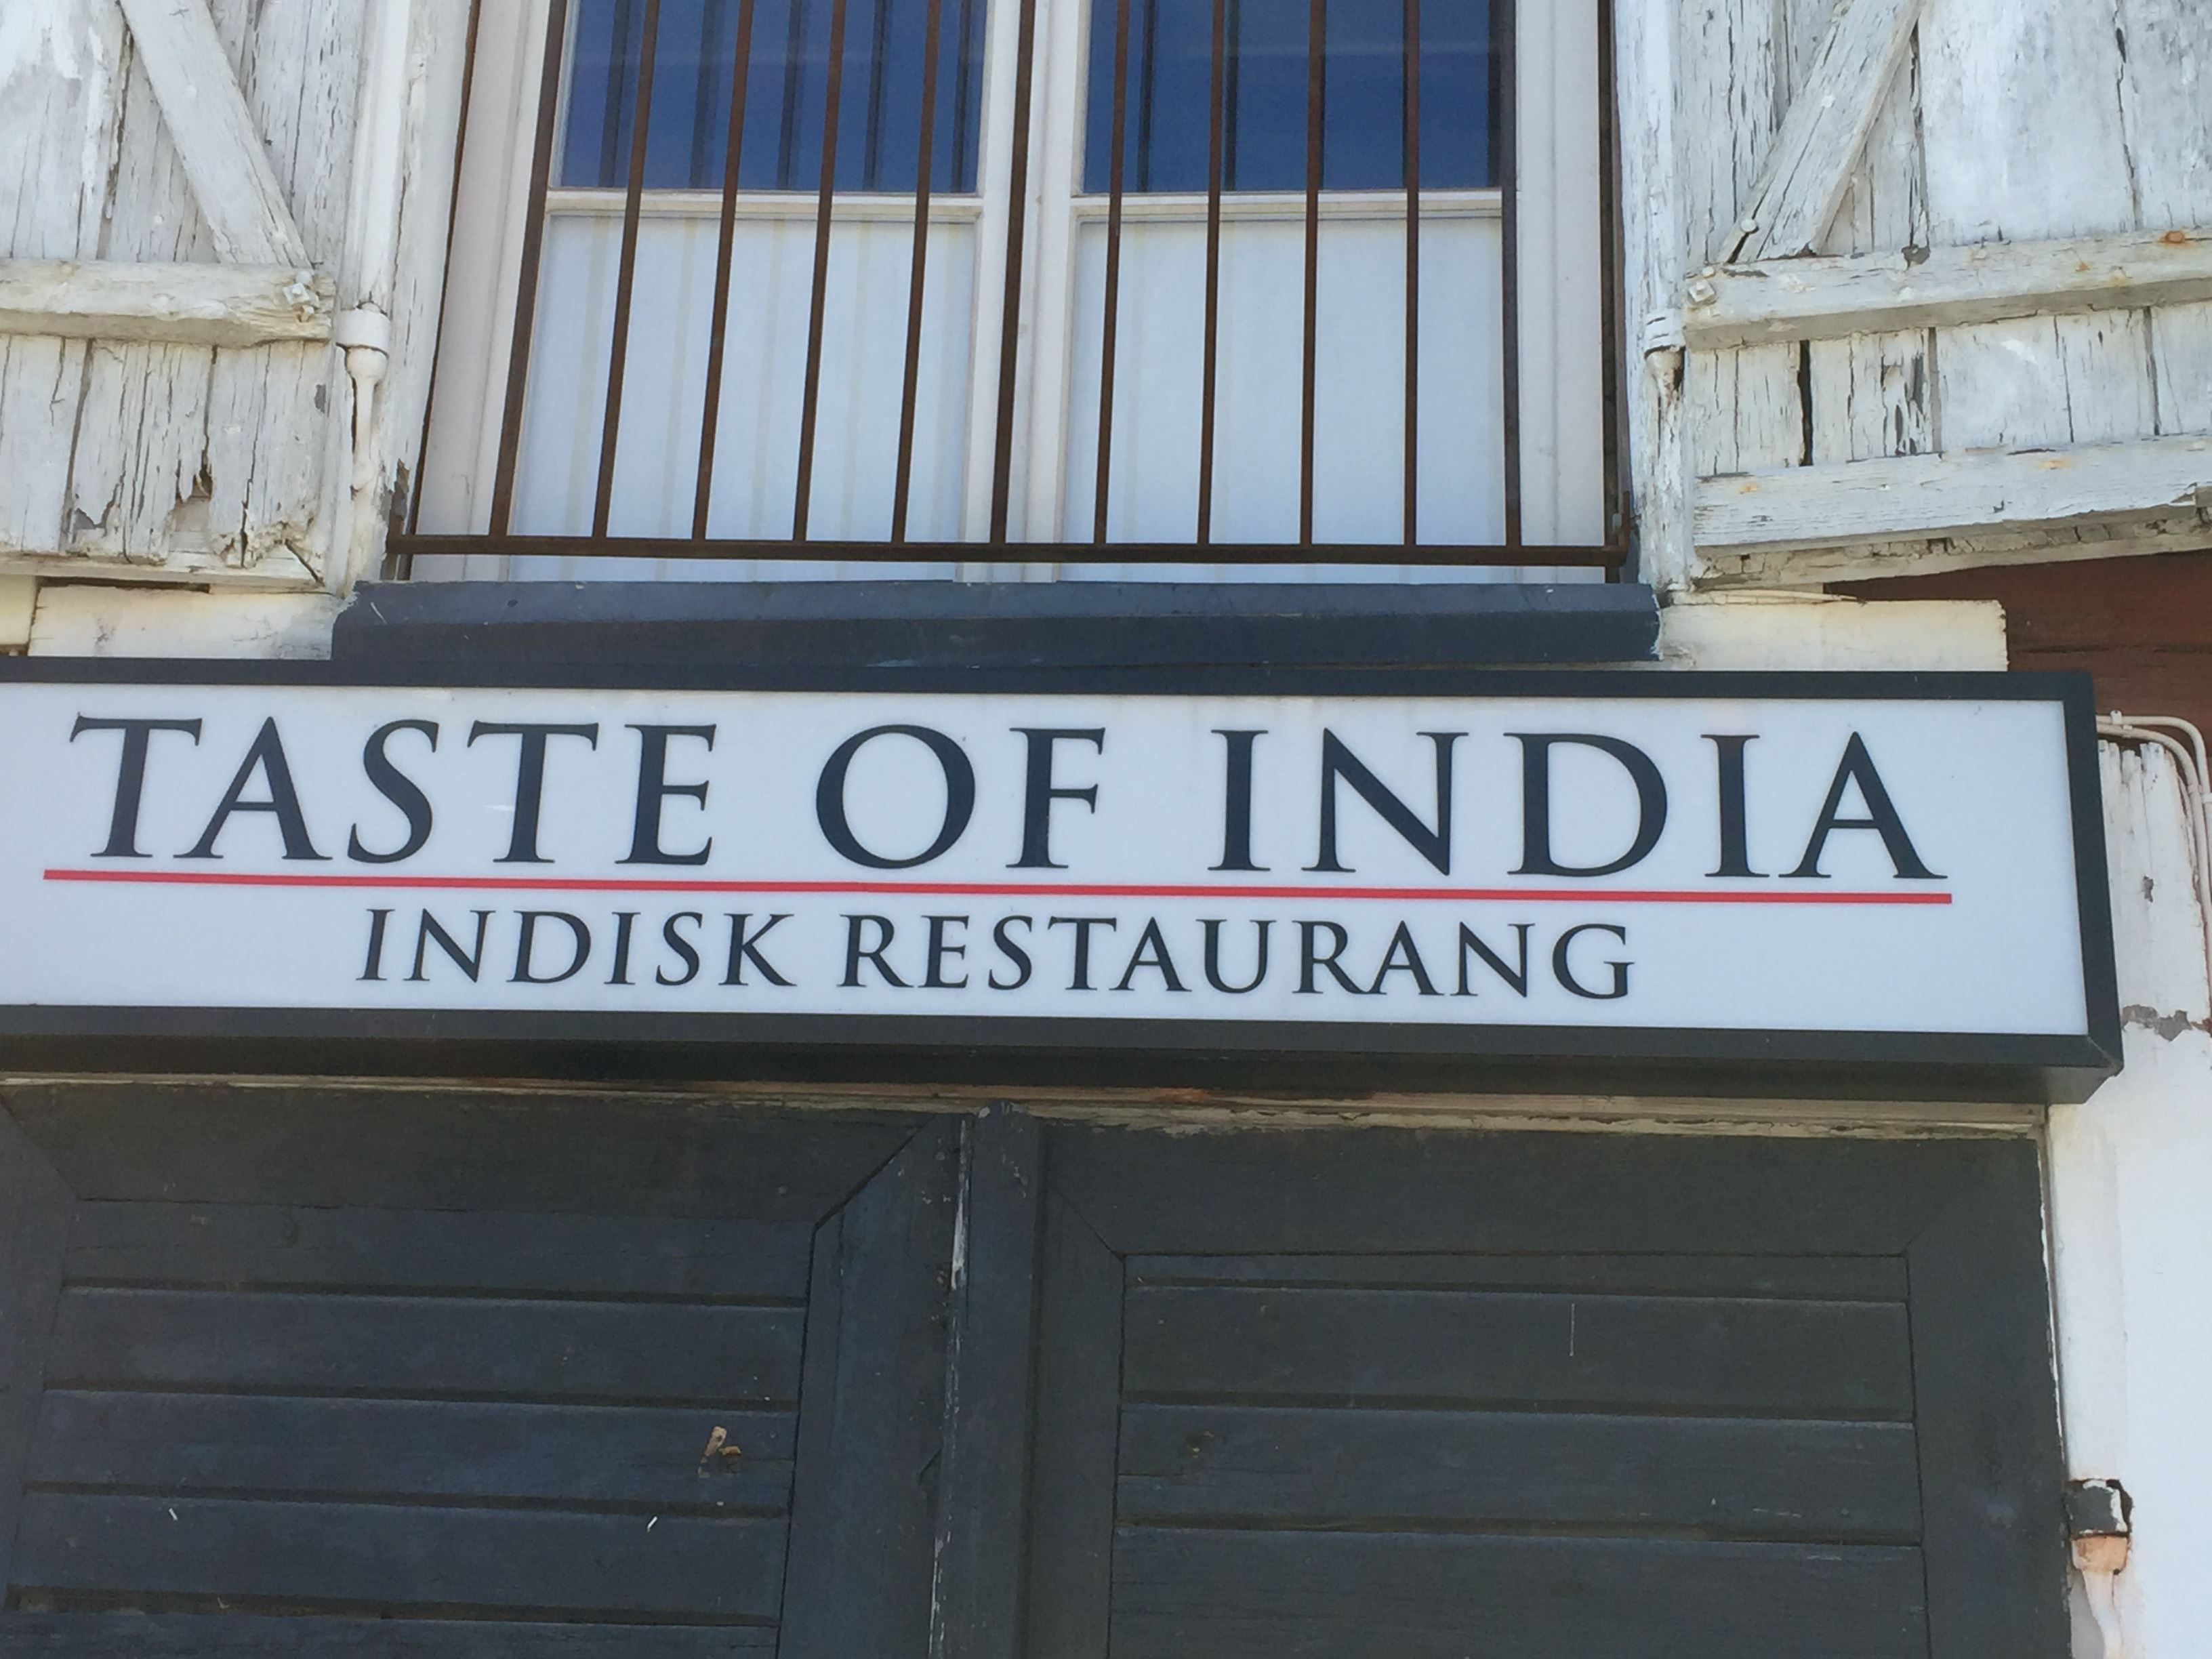 Taste of India - Sea Street Sushi Bar